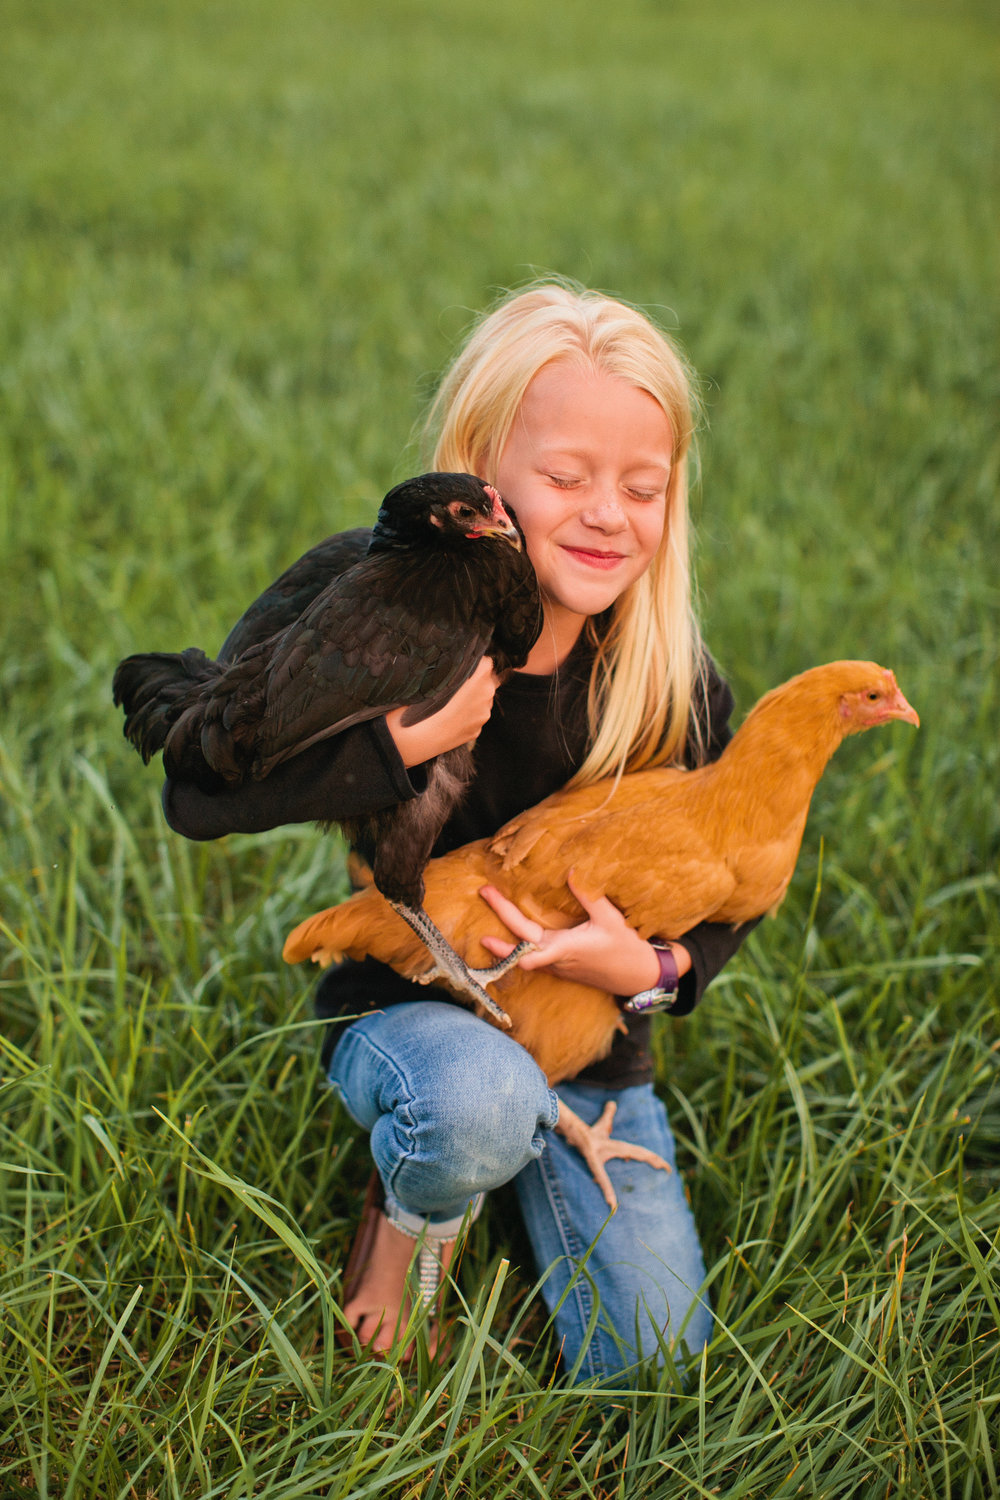 portrait of a young girl in backyard with chicken lifestyle family photos des moines